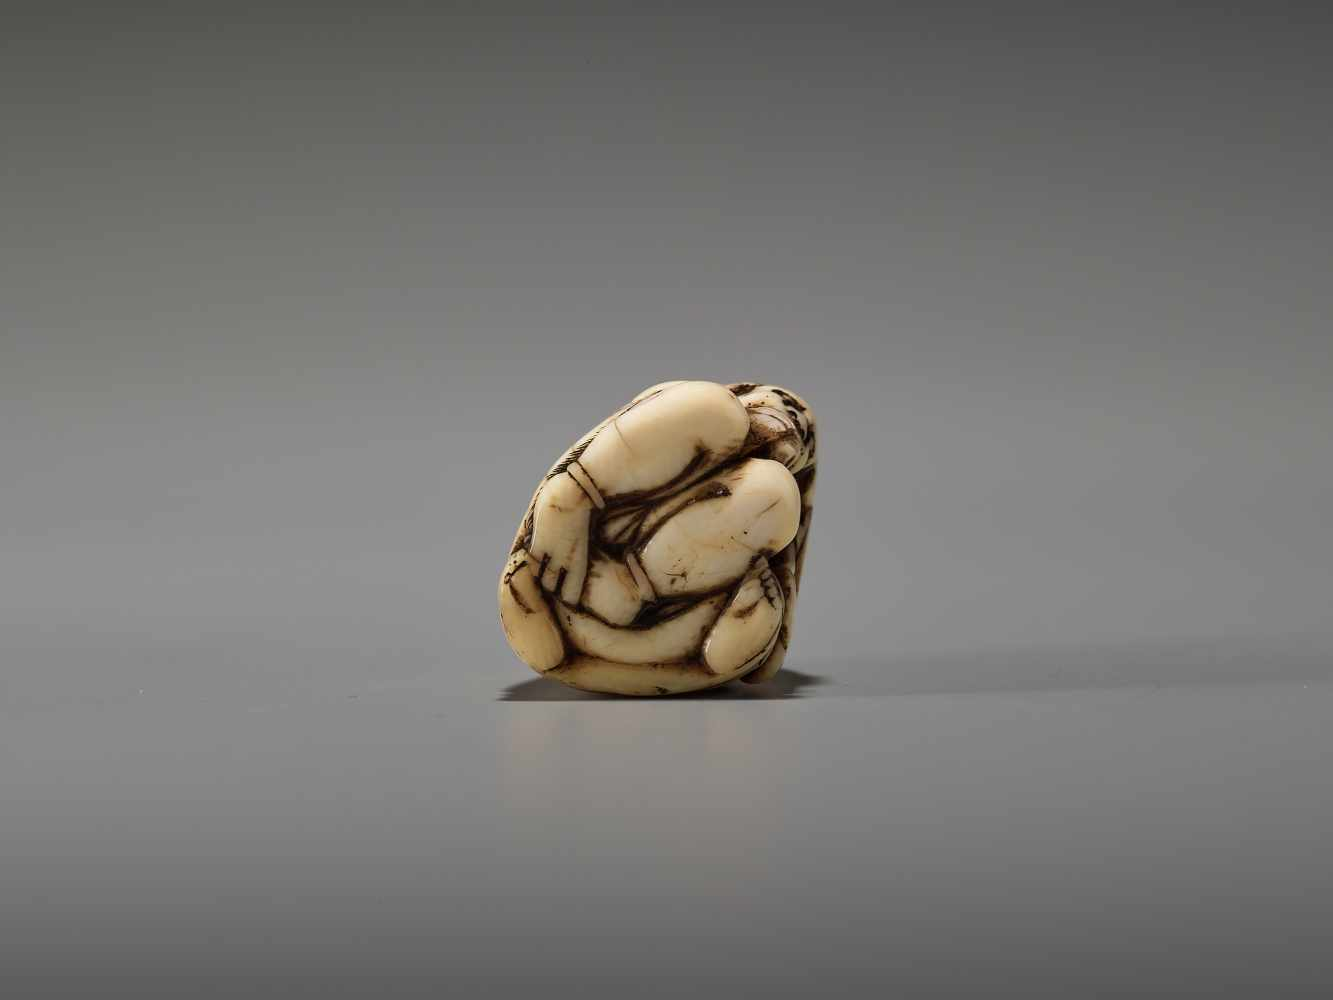 Los 41 - AN IVORY NETSUKE OF A MONK AND REPENTANT ONIUnsigned, Tomochika school, ivory netsukeJapan, mid to